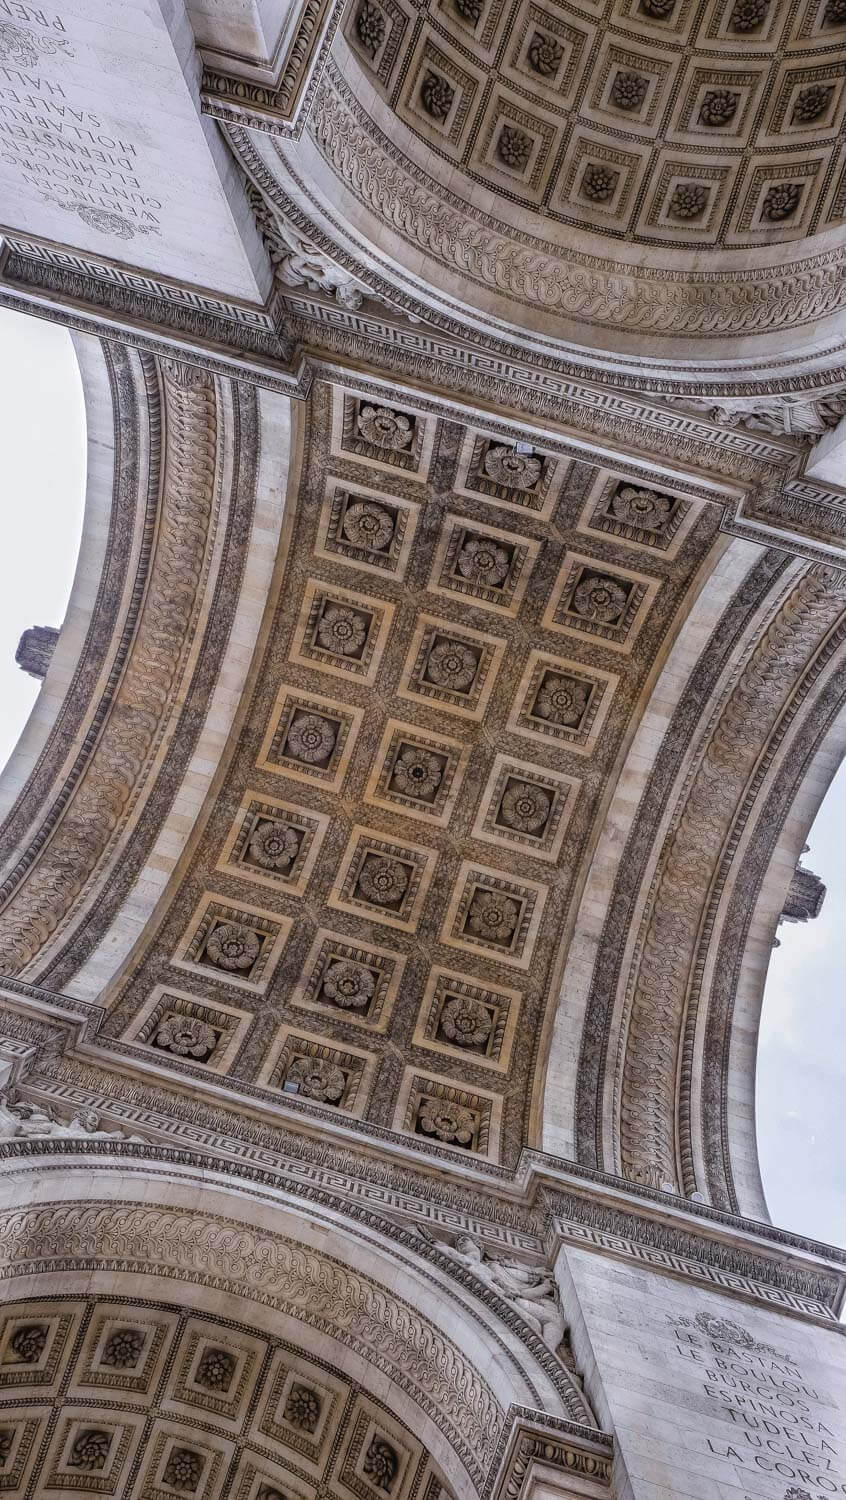 "The intricate carvings on the Arc de Triomphe, Paris. Travel photography and guide by © Natasha Lequepeys for ""And Then I Met Yoko"". #paristravel #photoblog #travelguide #france #parisitinerary"